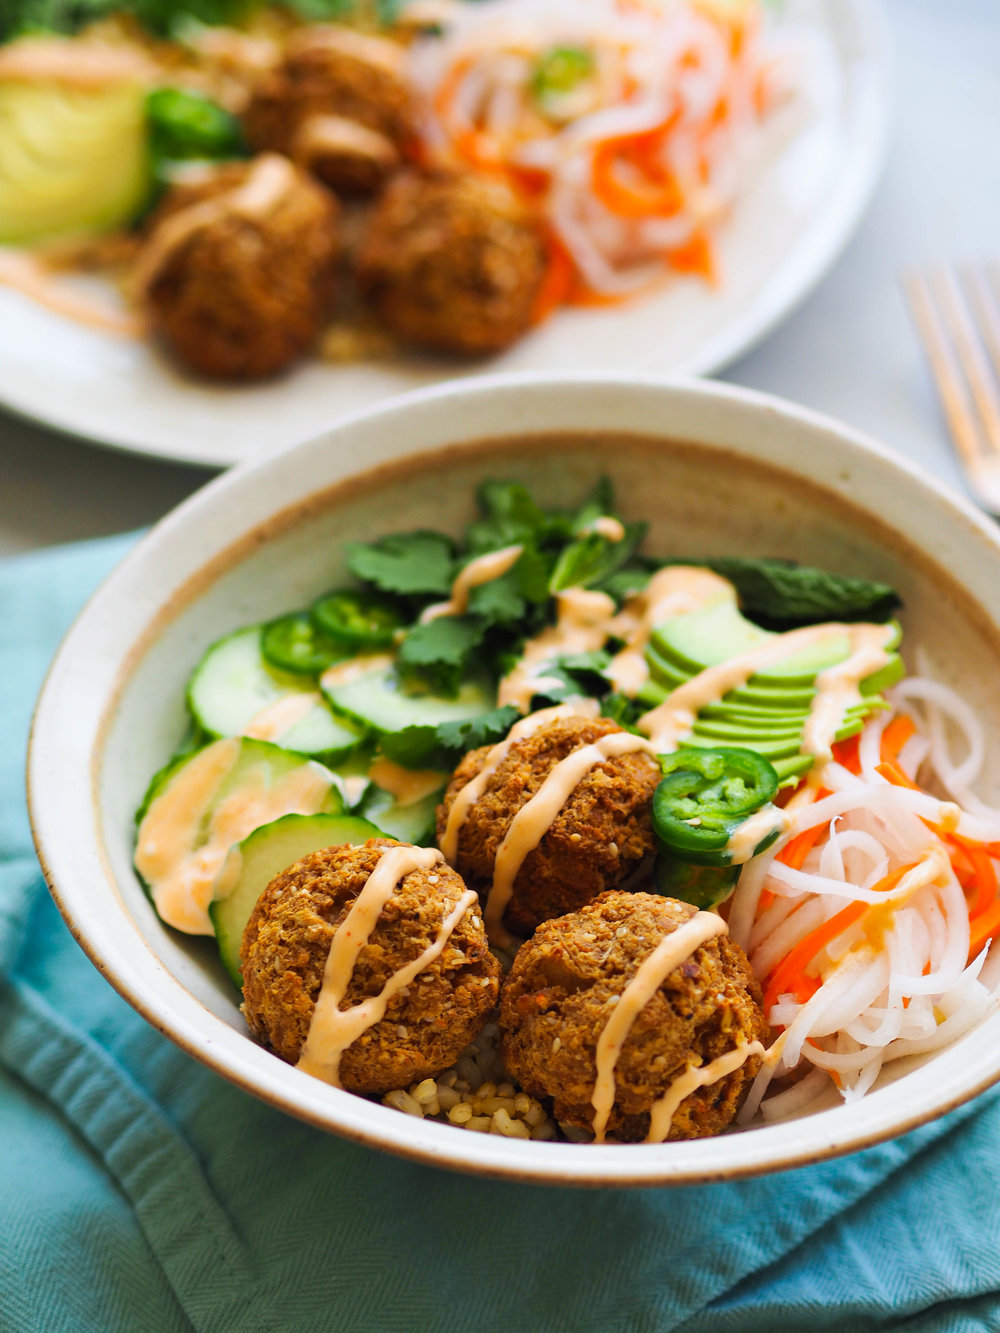 Banh mi in a bowl! Top brown rice with lemongrass tofu meatballs, pickled veggies and herbs, then drizzle with a spicy sriracha aioli! #grainbowl #tofu #Vietnamese #banhmi #healthyrecipe